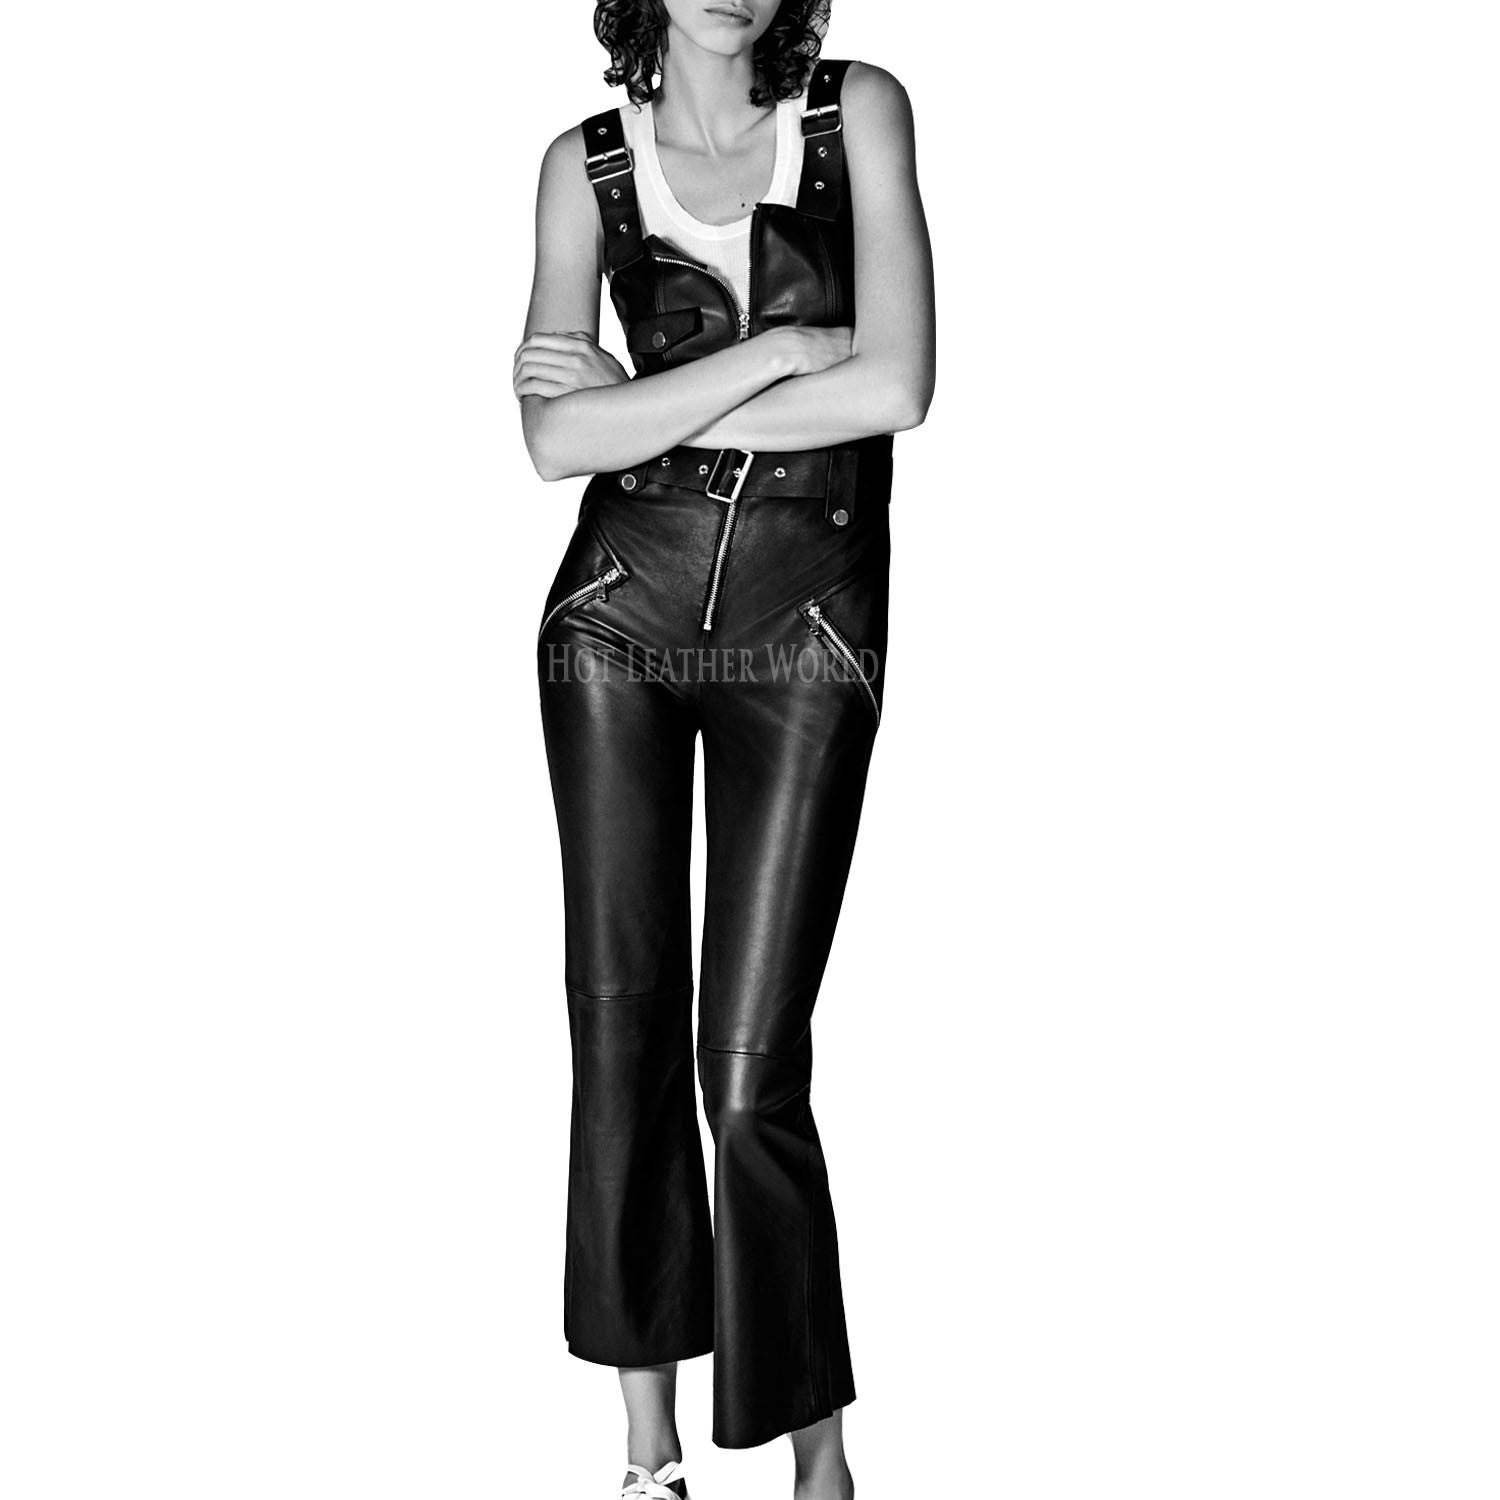 Biker Style Leather Jumpsuit For Women -  HOTLEATHERWORLD